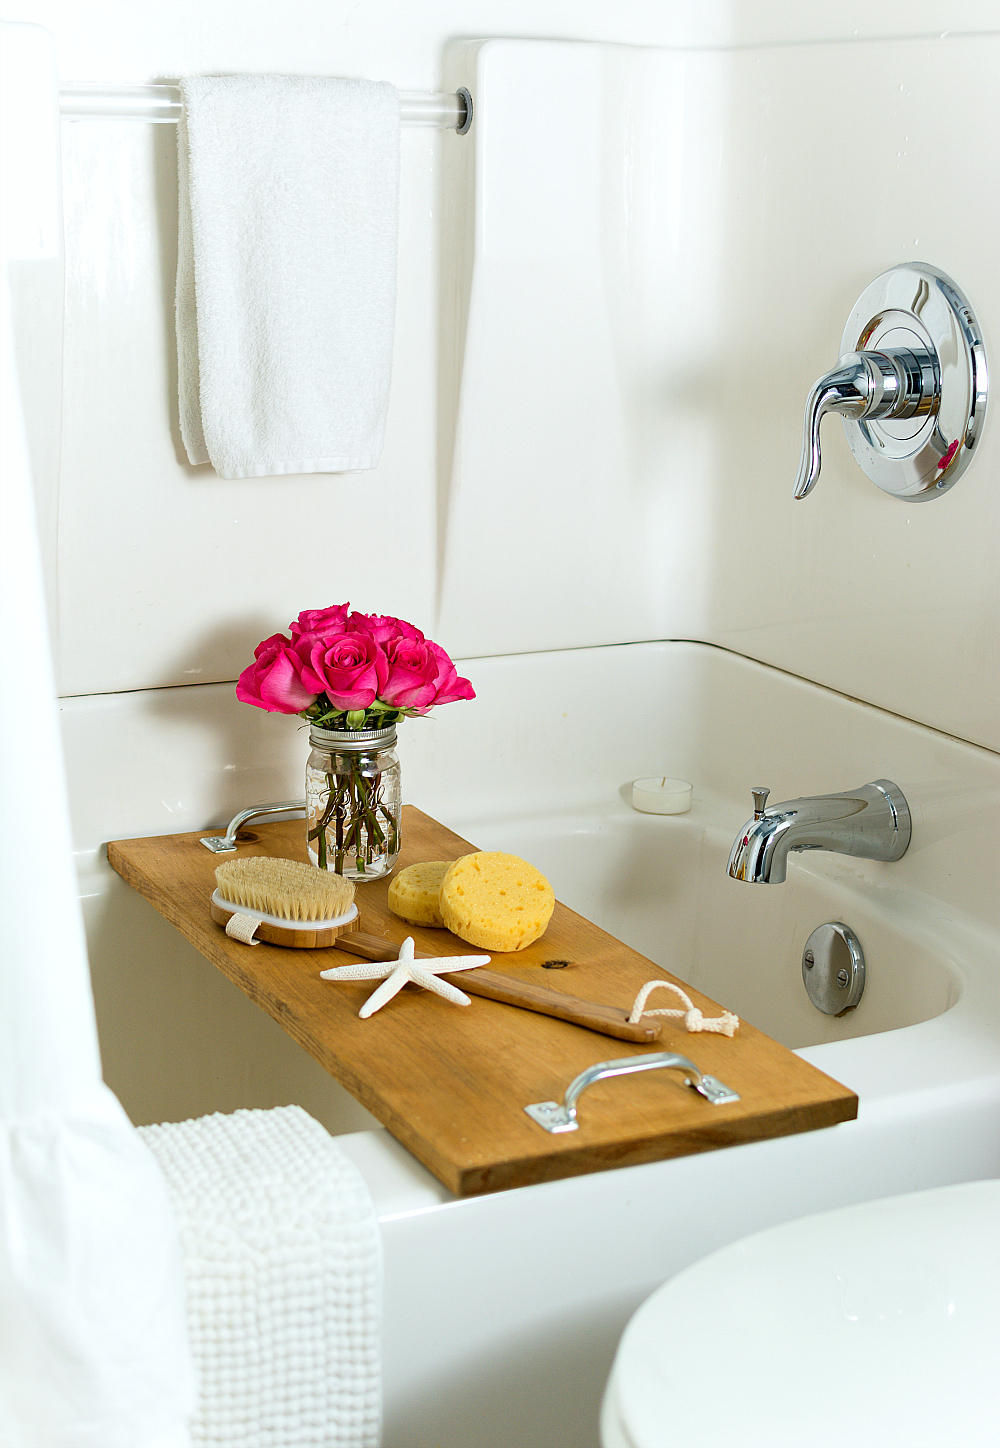 shower-bath-diy-makeover-ideas bath caddy (4 of 5)